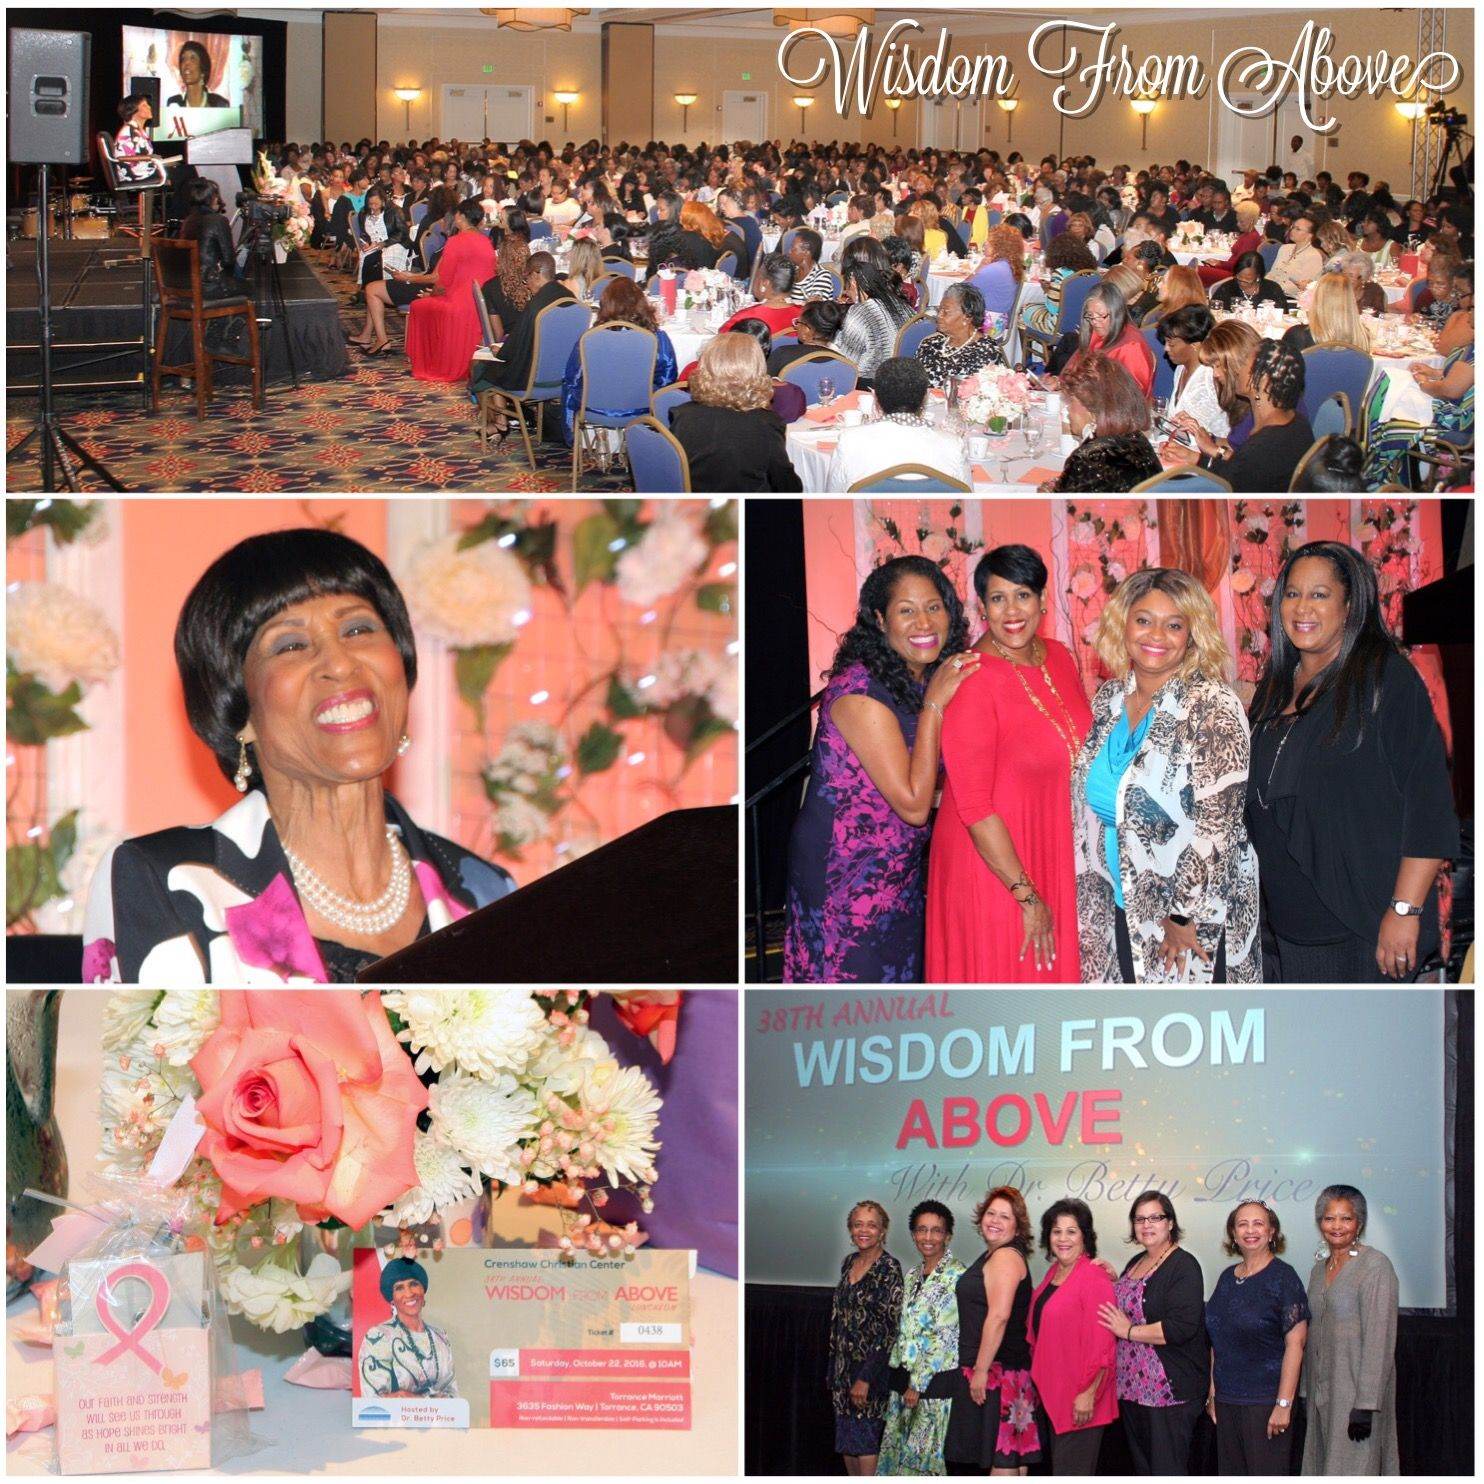 38th Annual Wisdom From Above Luncheon, at the Torrance Marriott. #wfa #wisdomfromabove #ladies #fellowship #drbetty #ccc #torrancemarriot #luncheon